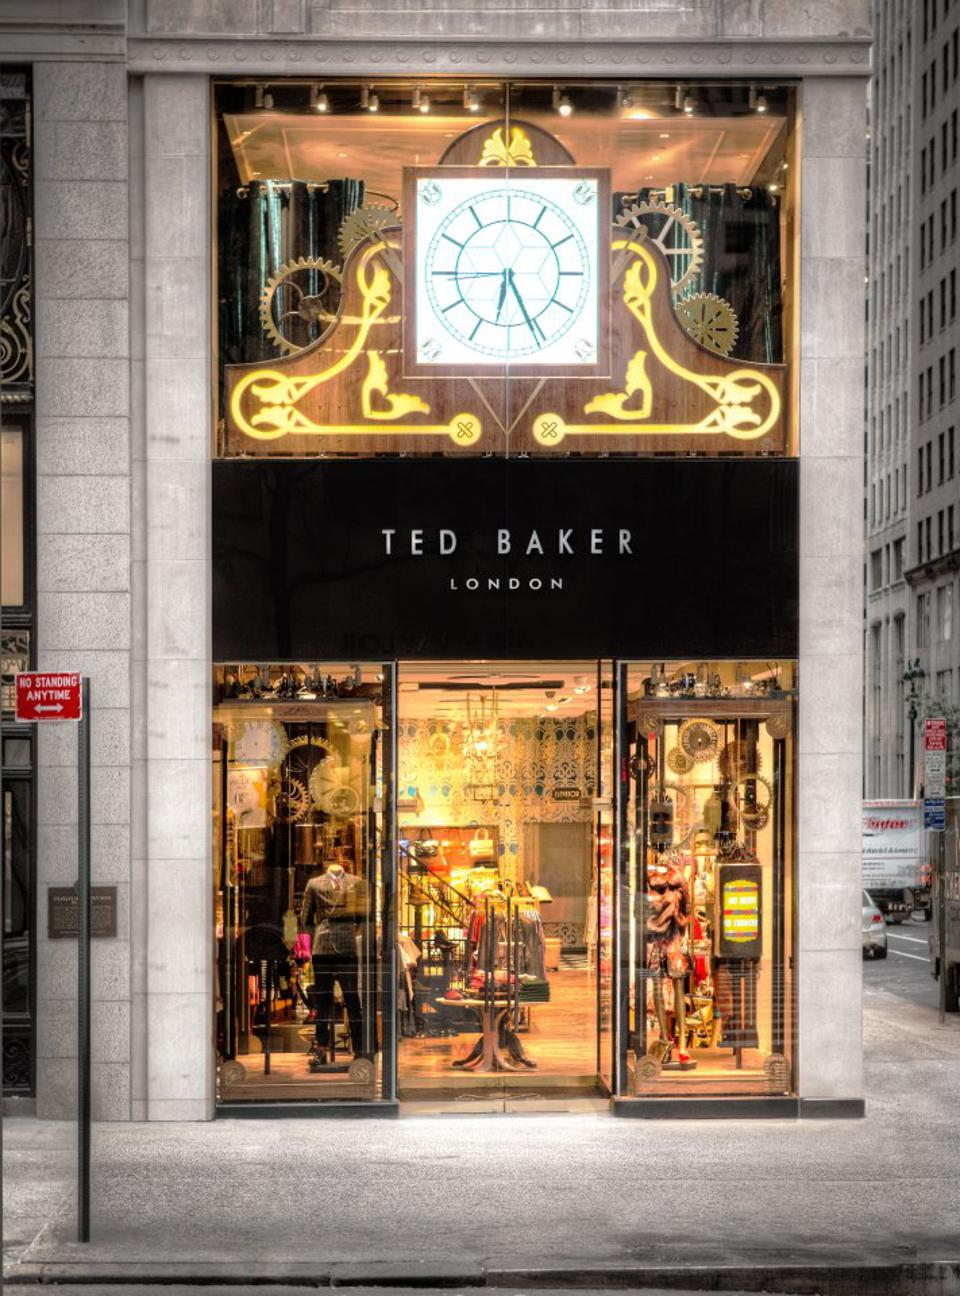 Ted Baker on Fifth Avenue, New York.